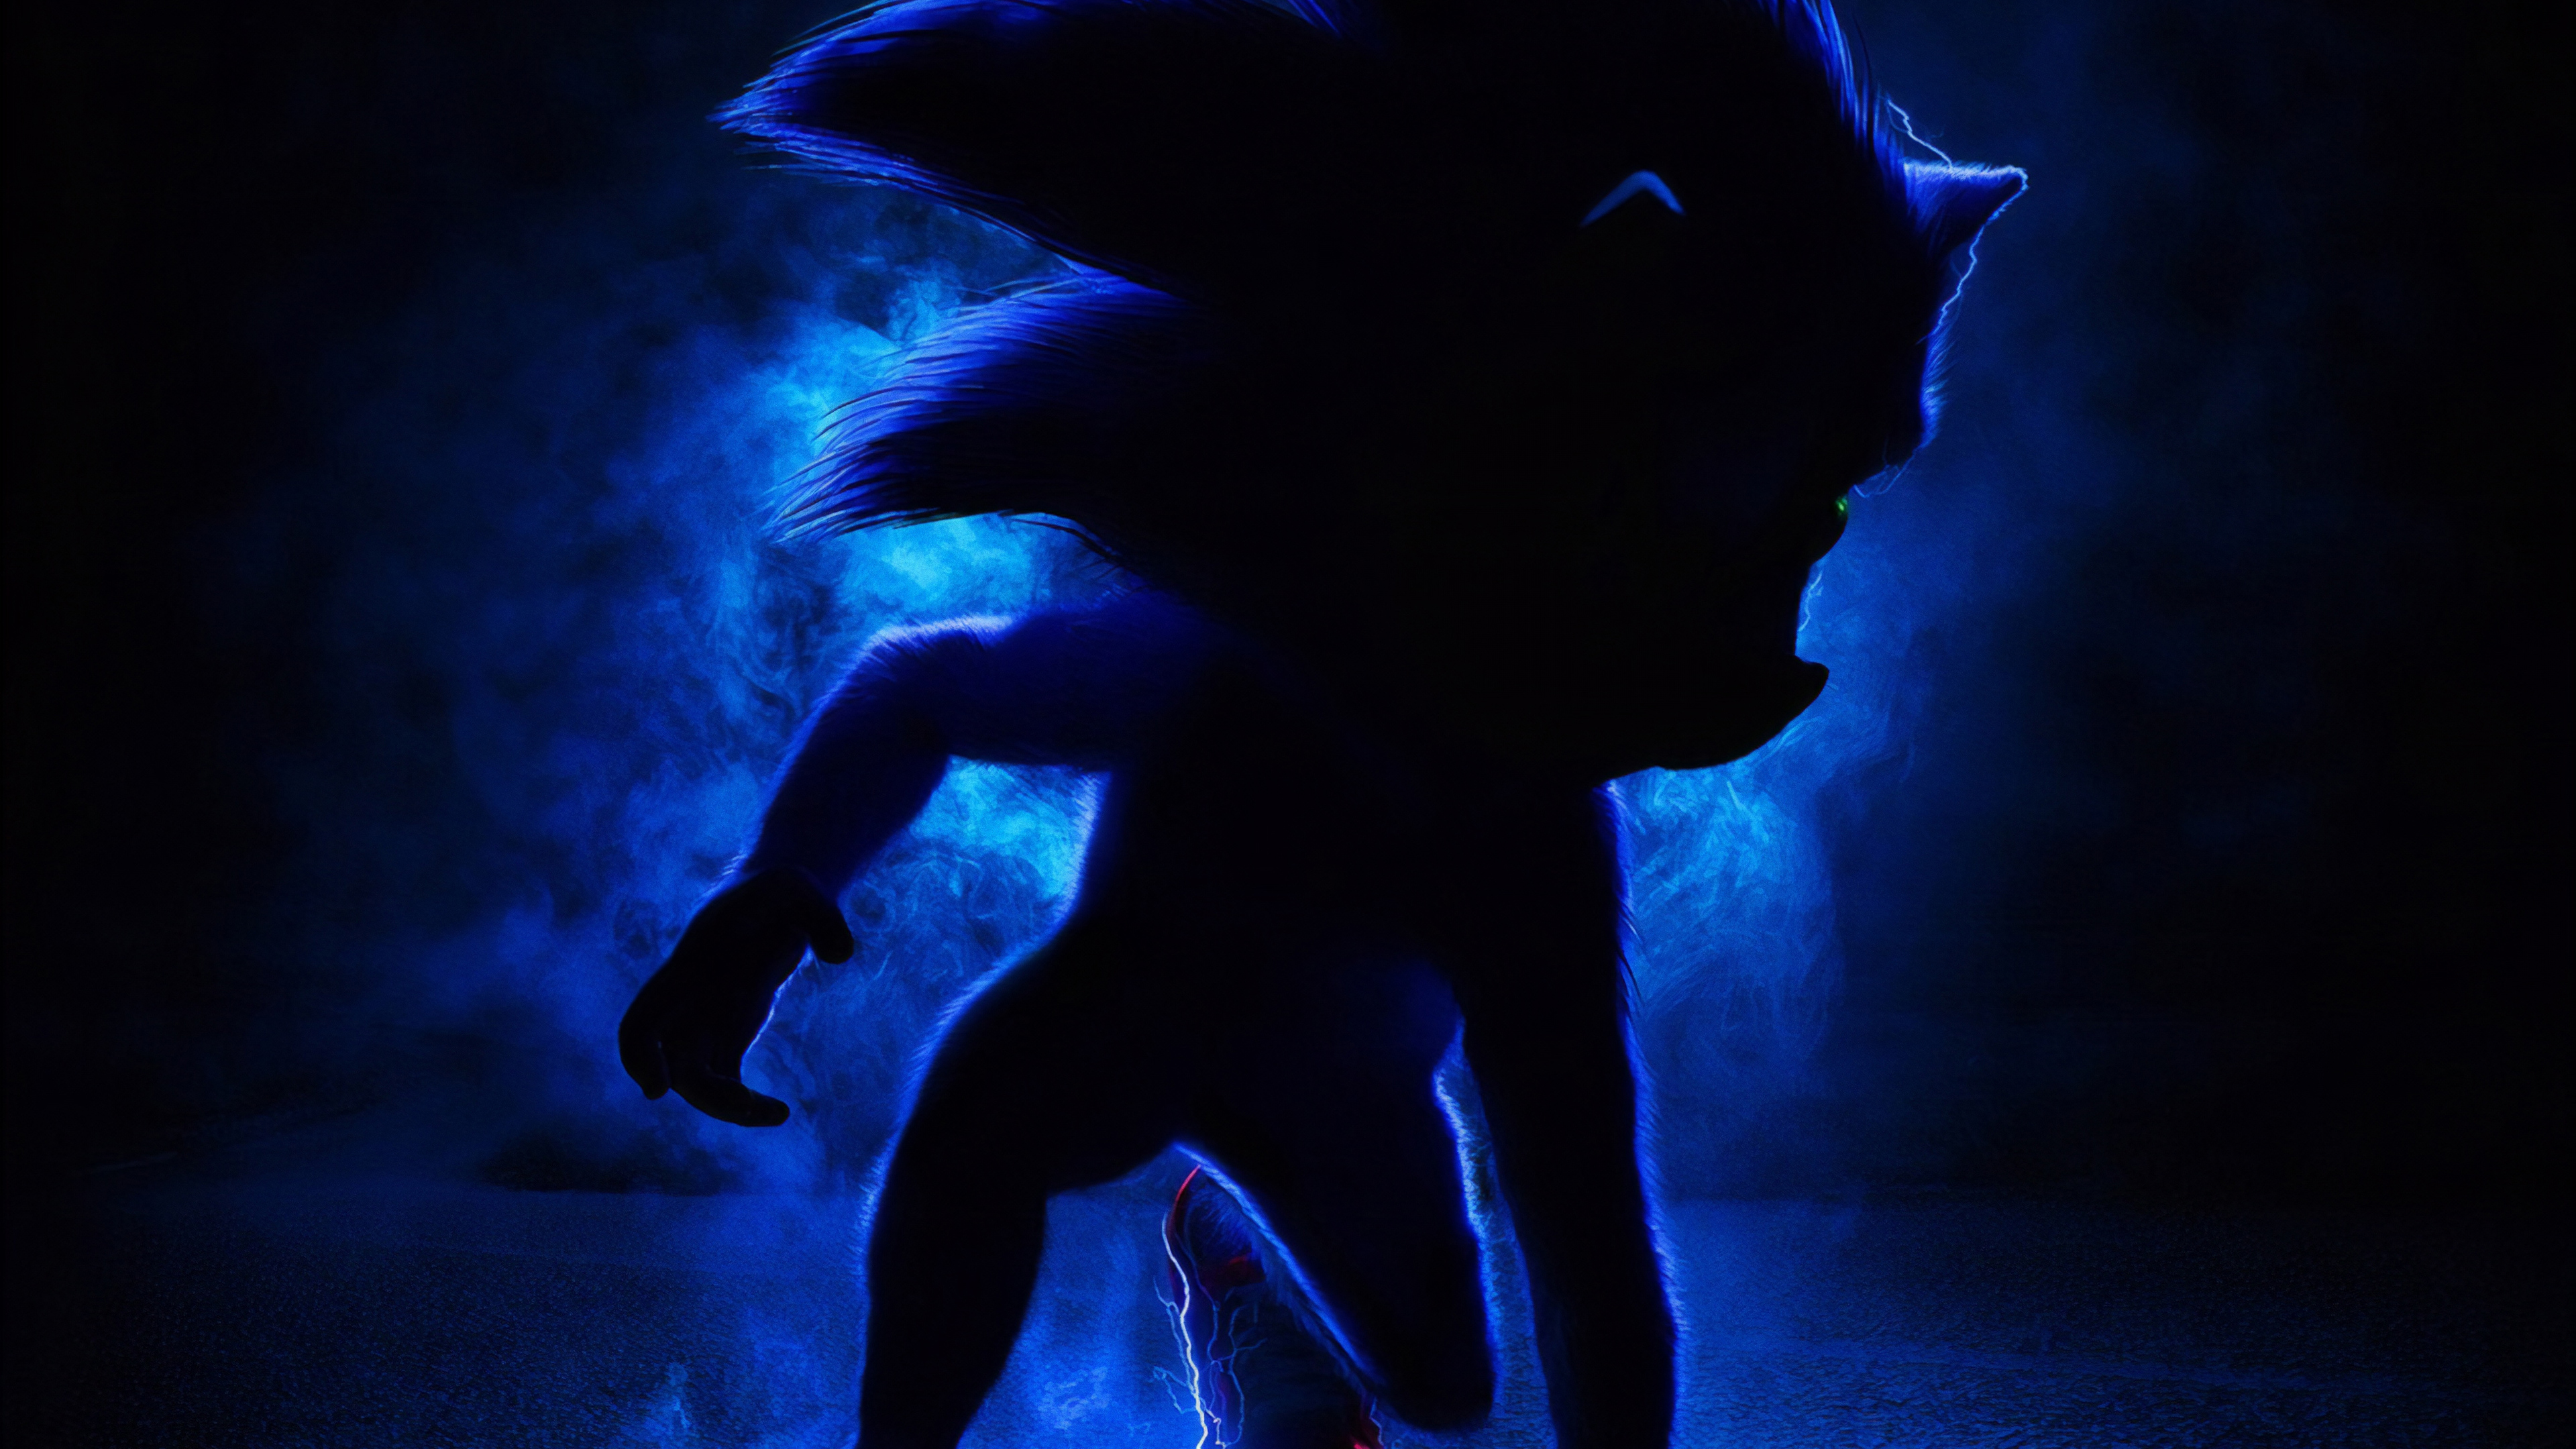 sonic the hedgehog 2019 movie 4k 1545589853 - Sonic The Hedgehog 2019 Movie 4k - sonic the hedgehog wallpapers, movies wallpapers, hd-wallpapers, 5k wallpapers, 4k-wallpapers, 2019 movies wallpapers